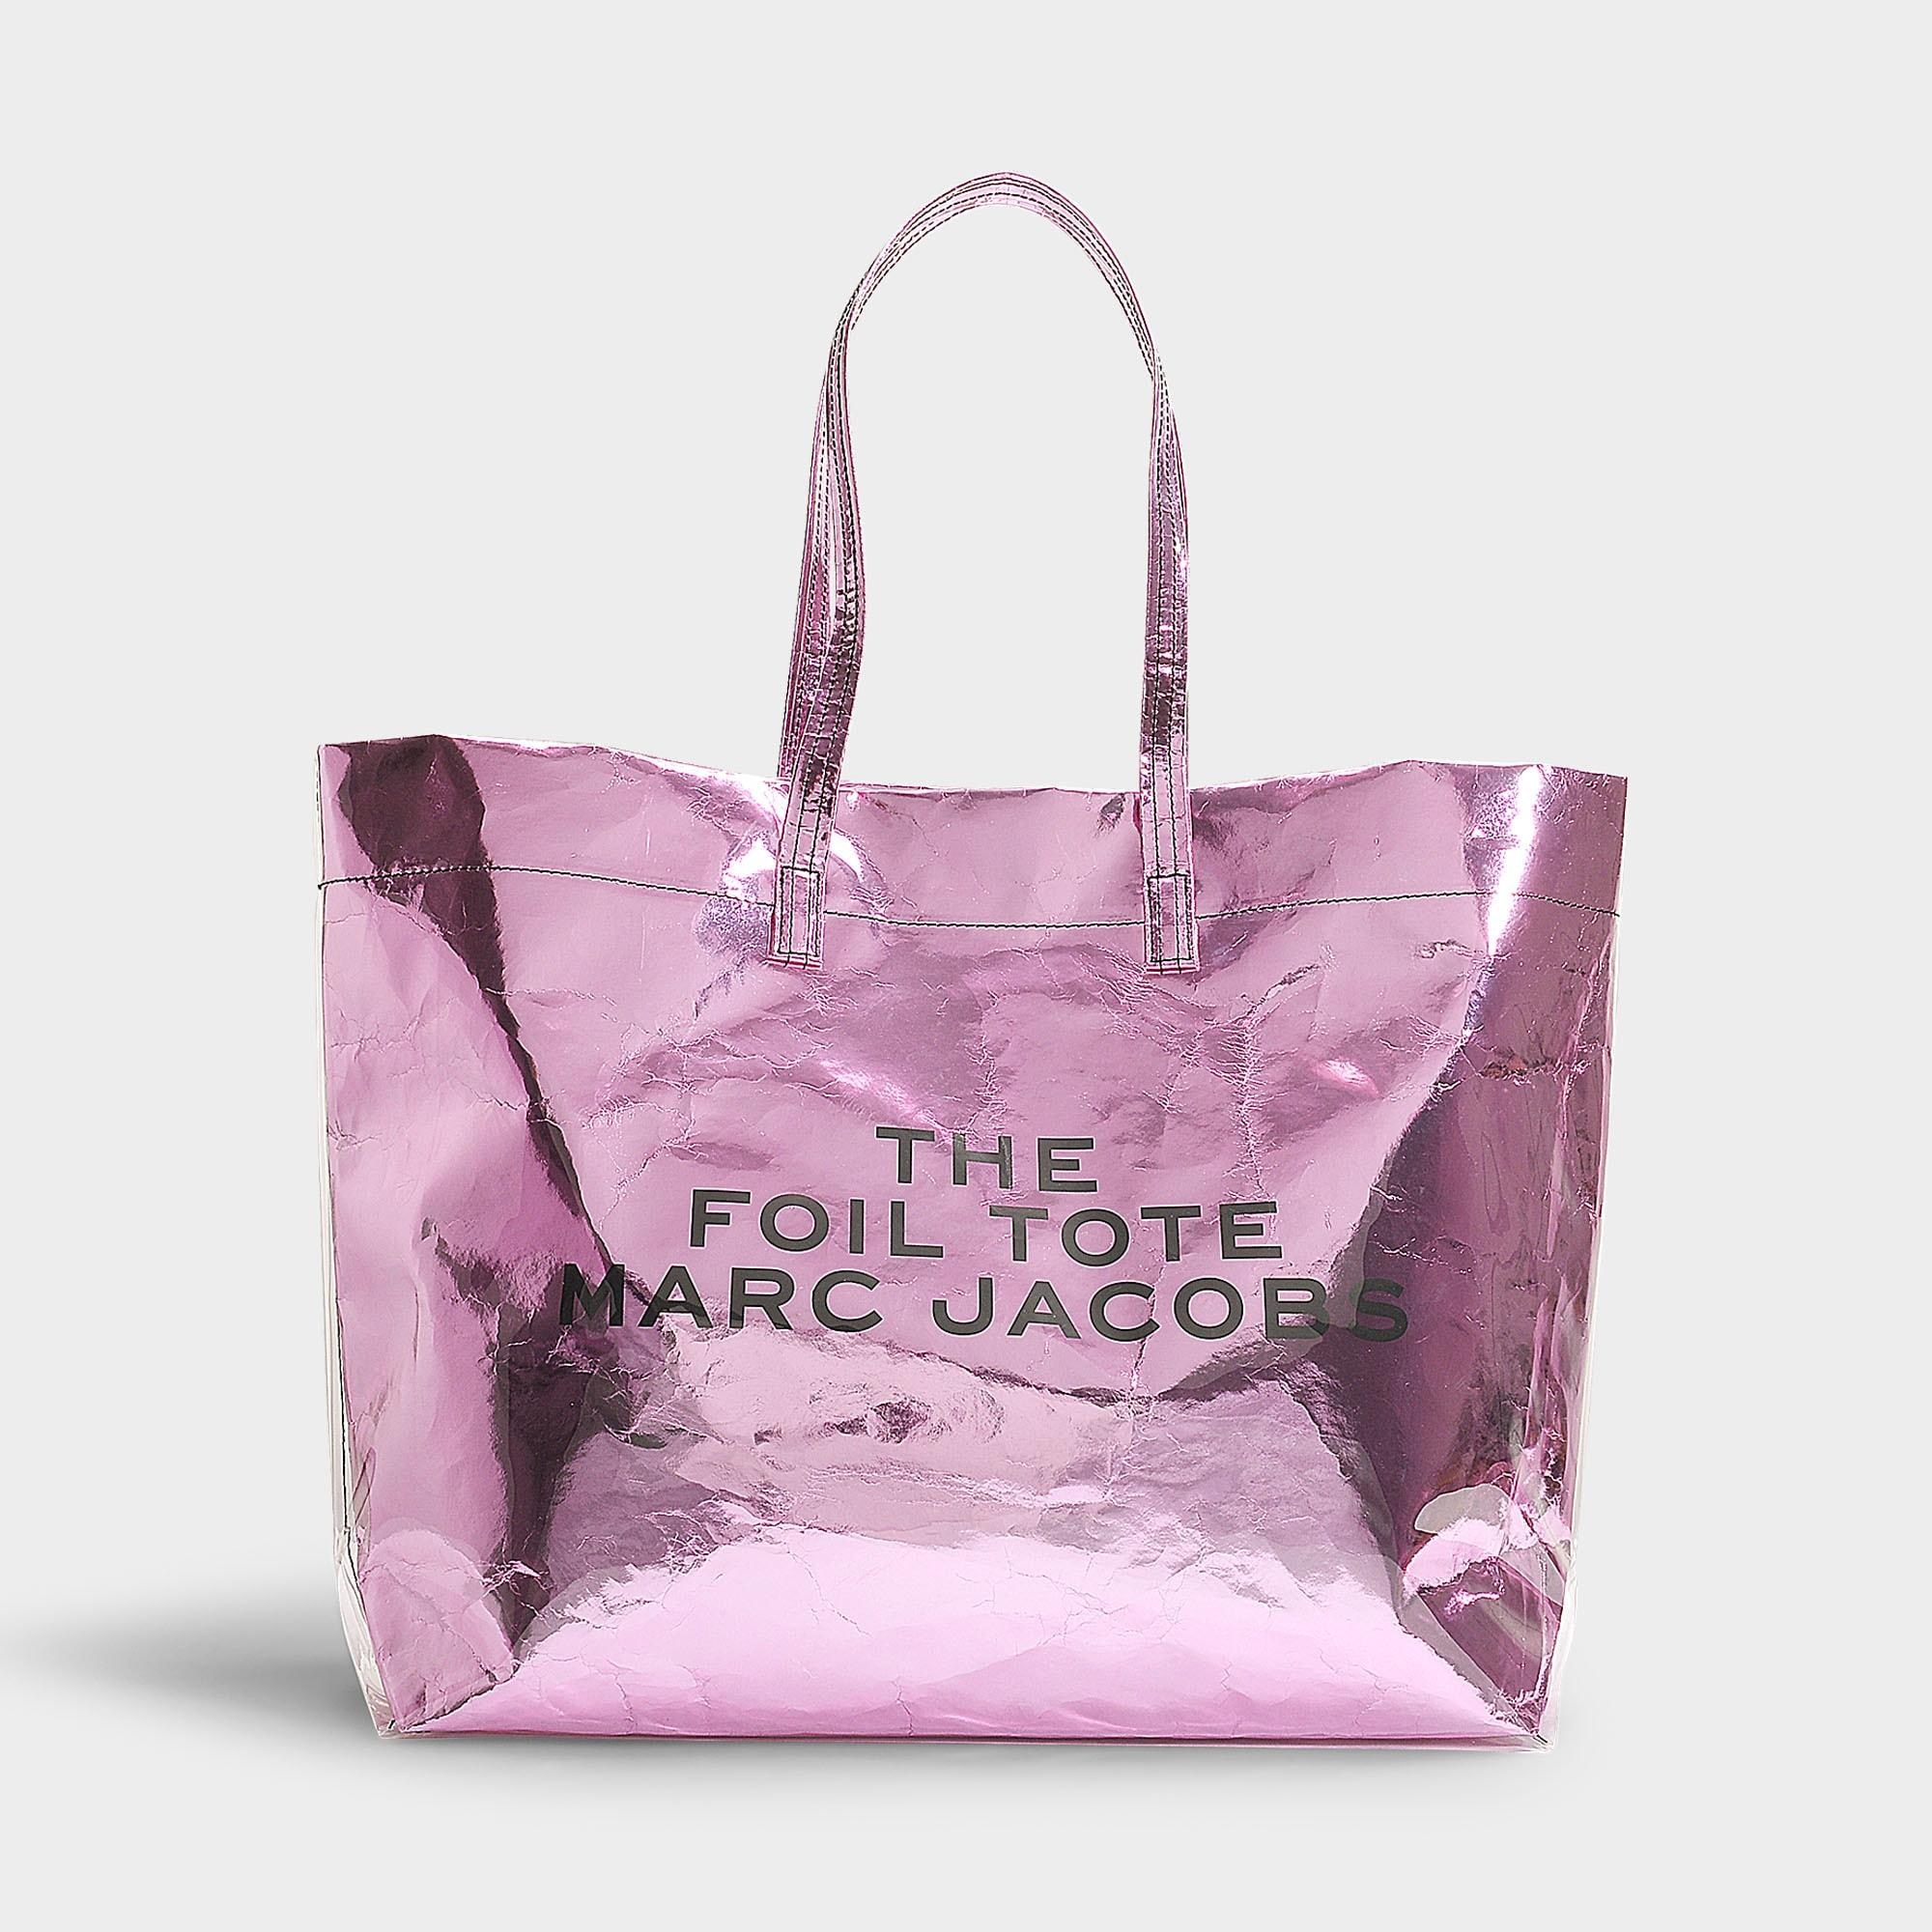 573cd5a30320 Lyst - Marc Jacobs The Foil Tote In Pink Mixed Materials in Pink ...